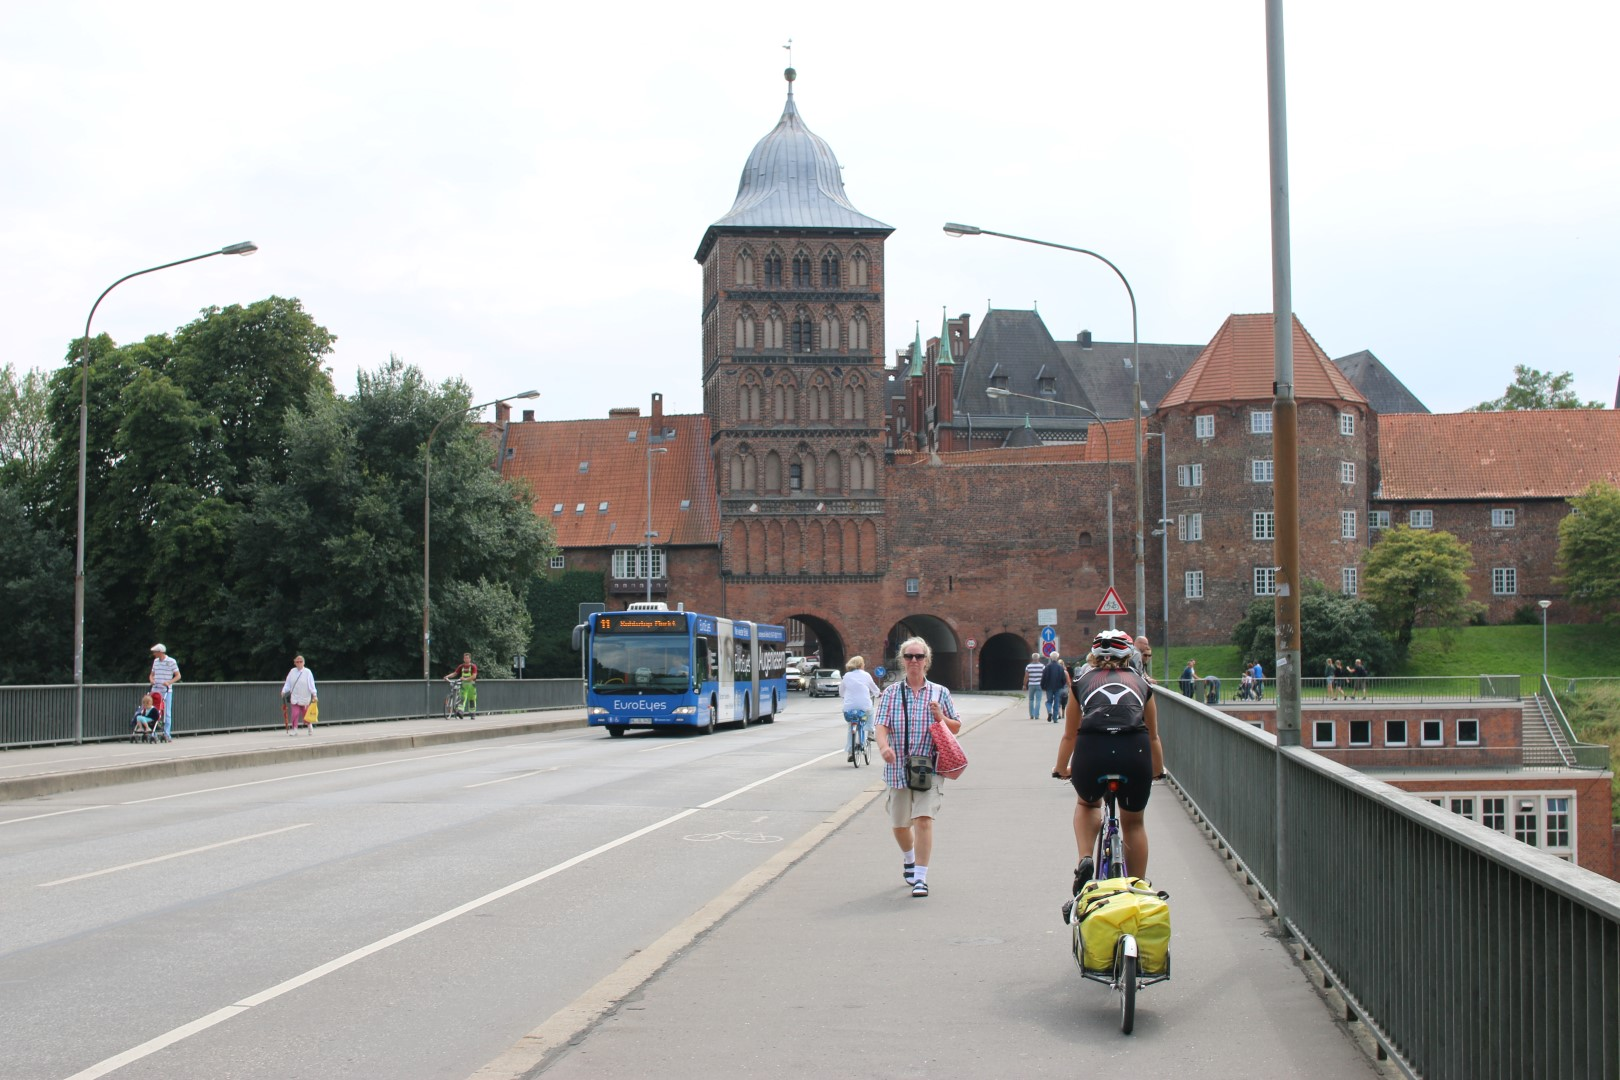 Lübeck  here  we  come!  My  bicycle  is  ready  for  maintenance  and  we're  ready  to  enjoy  a  day  off!